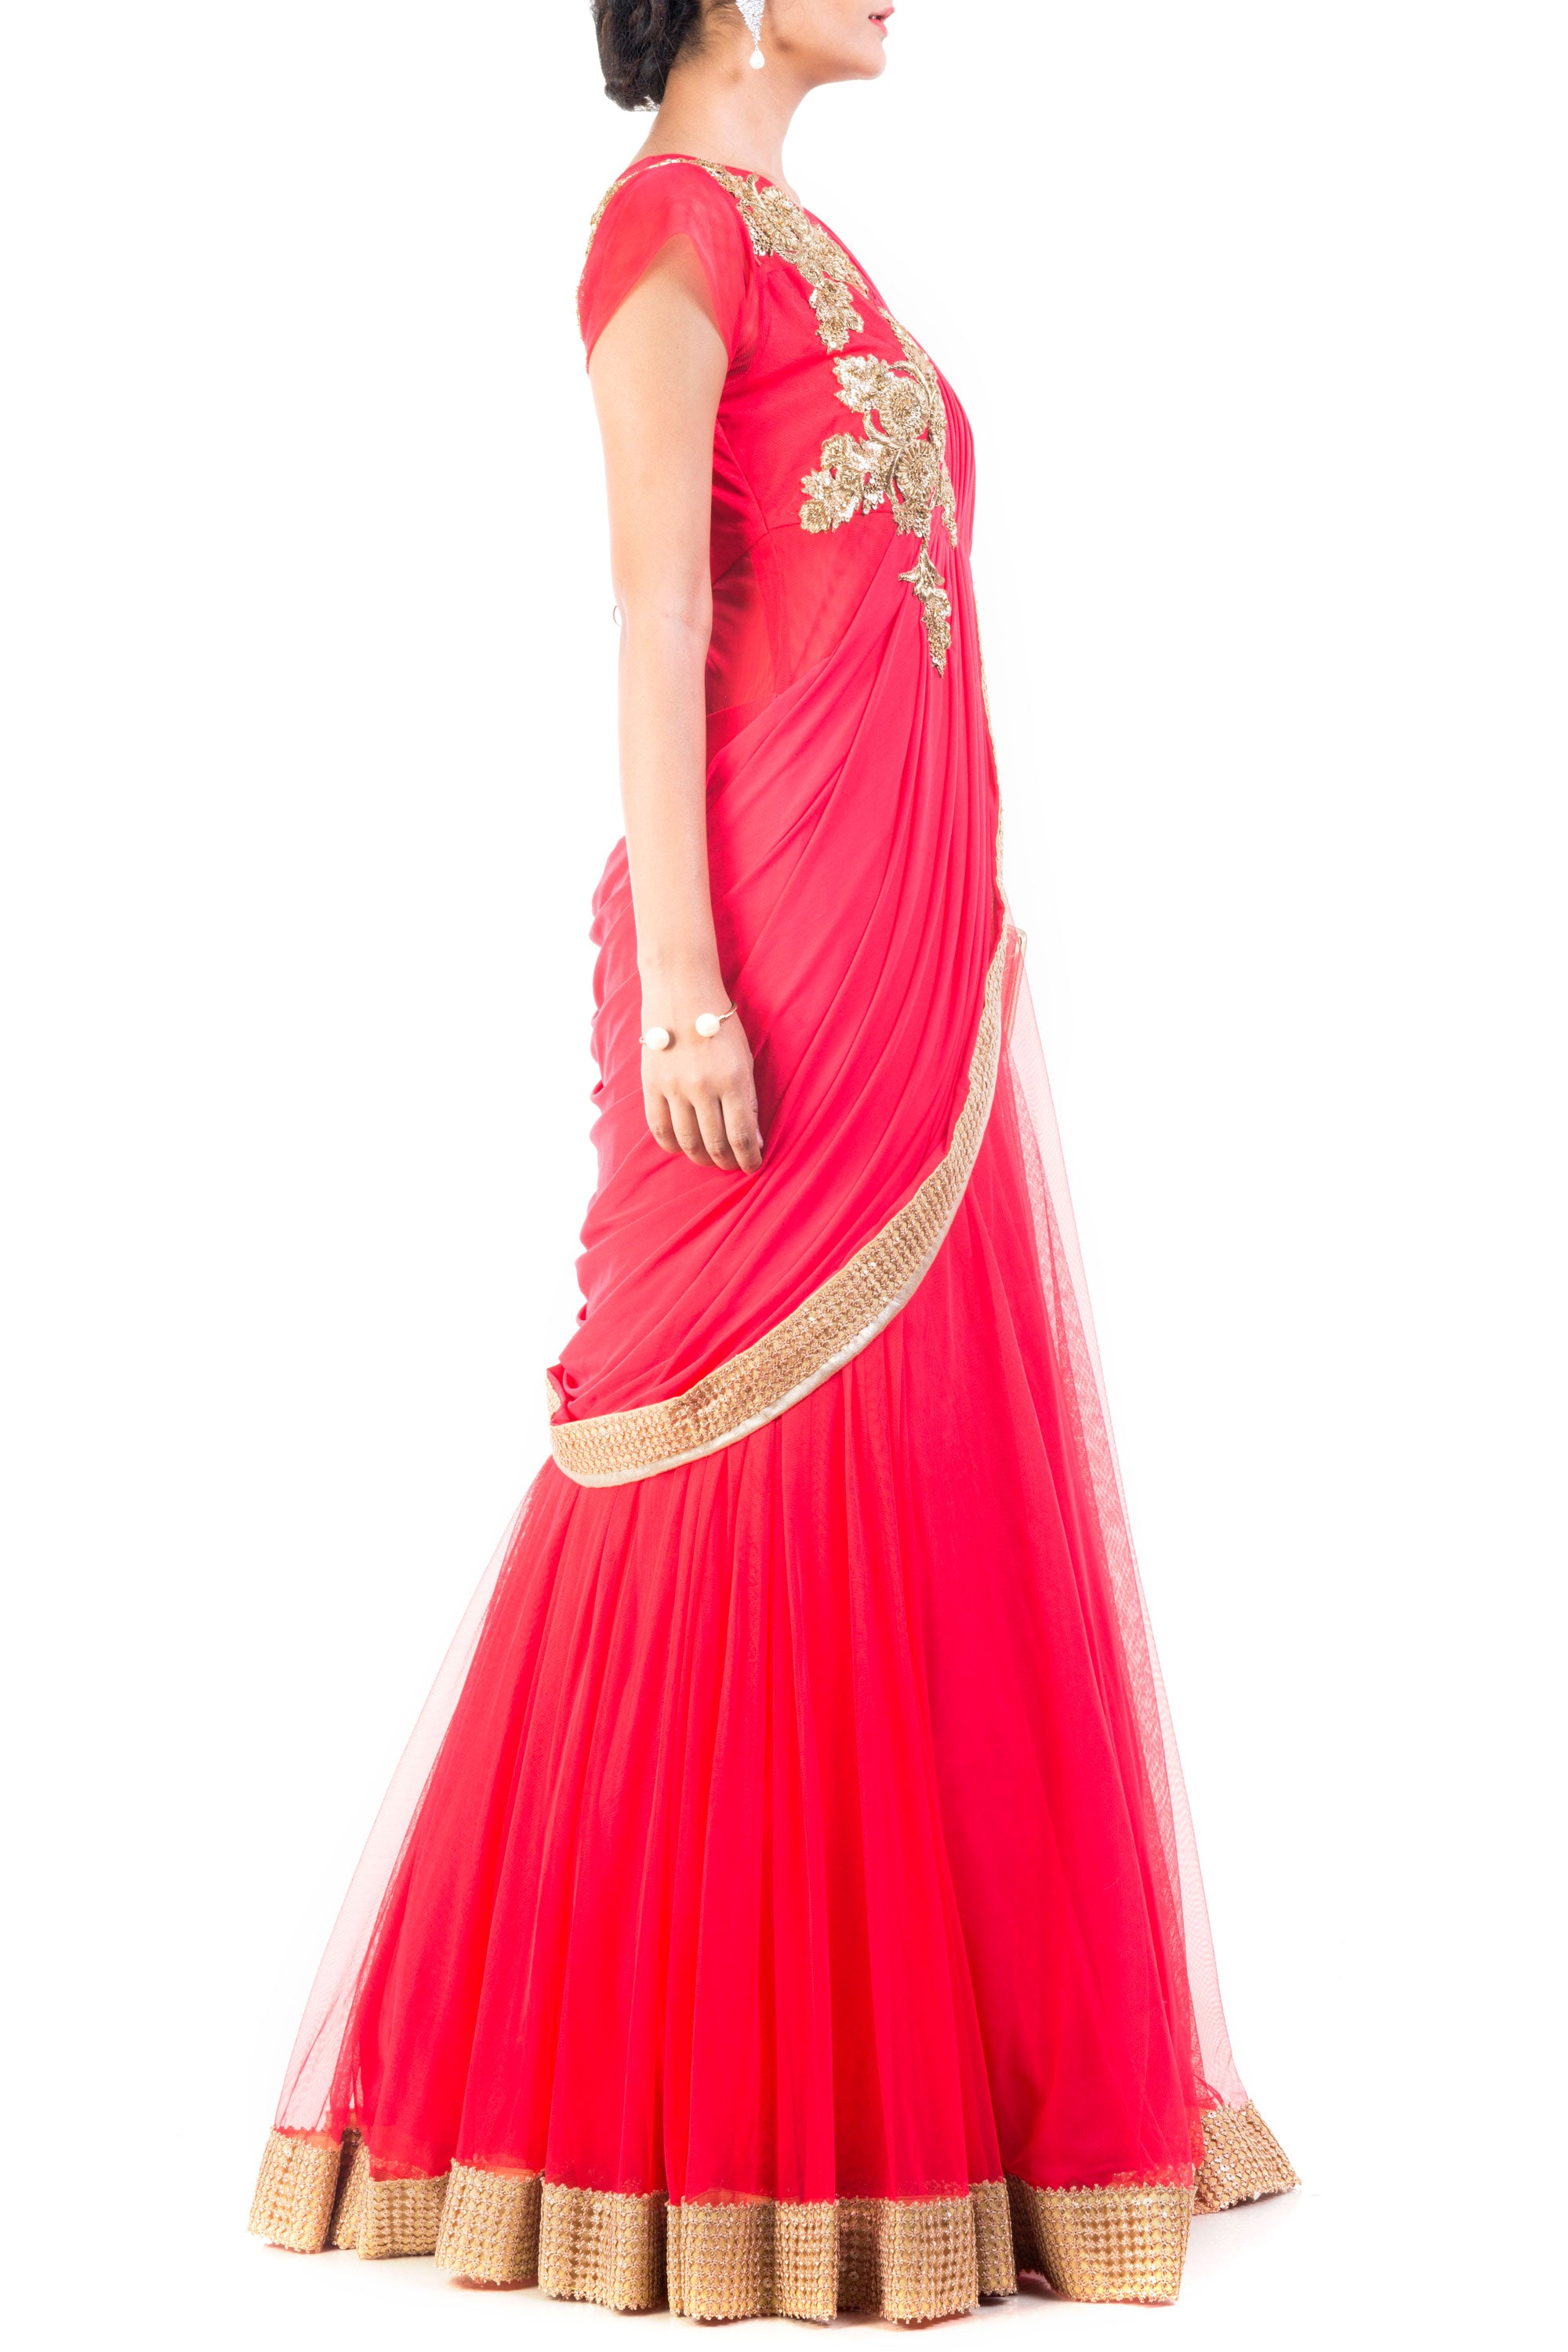 Tomato Coloured Gown Saree Side